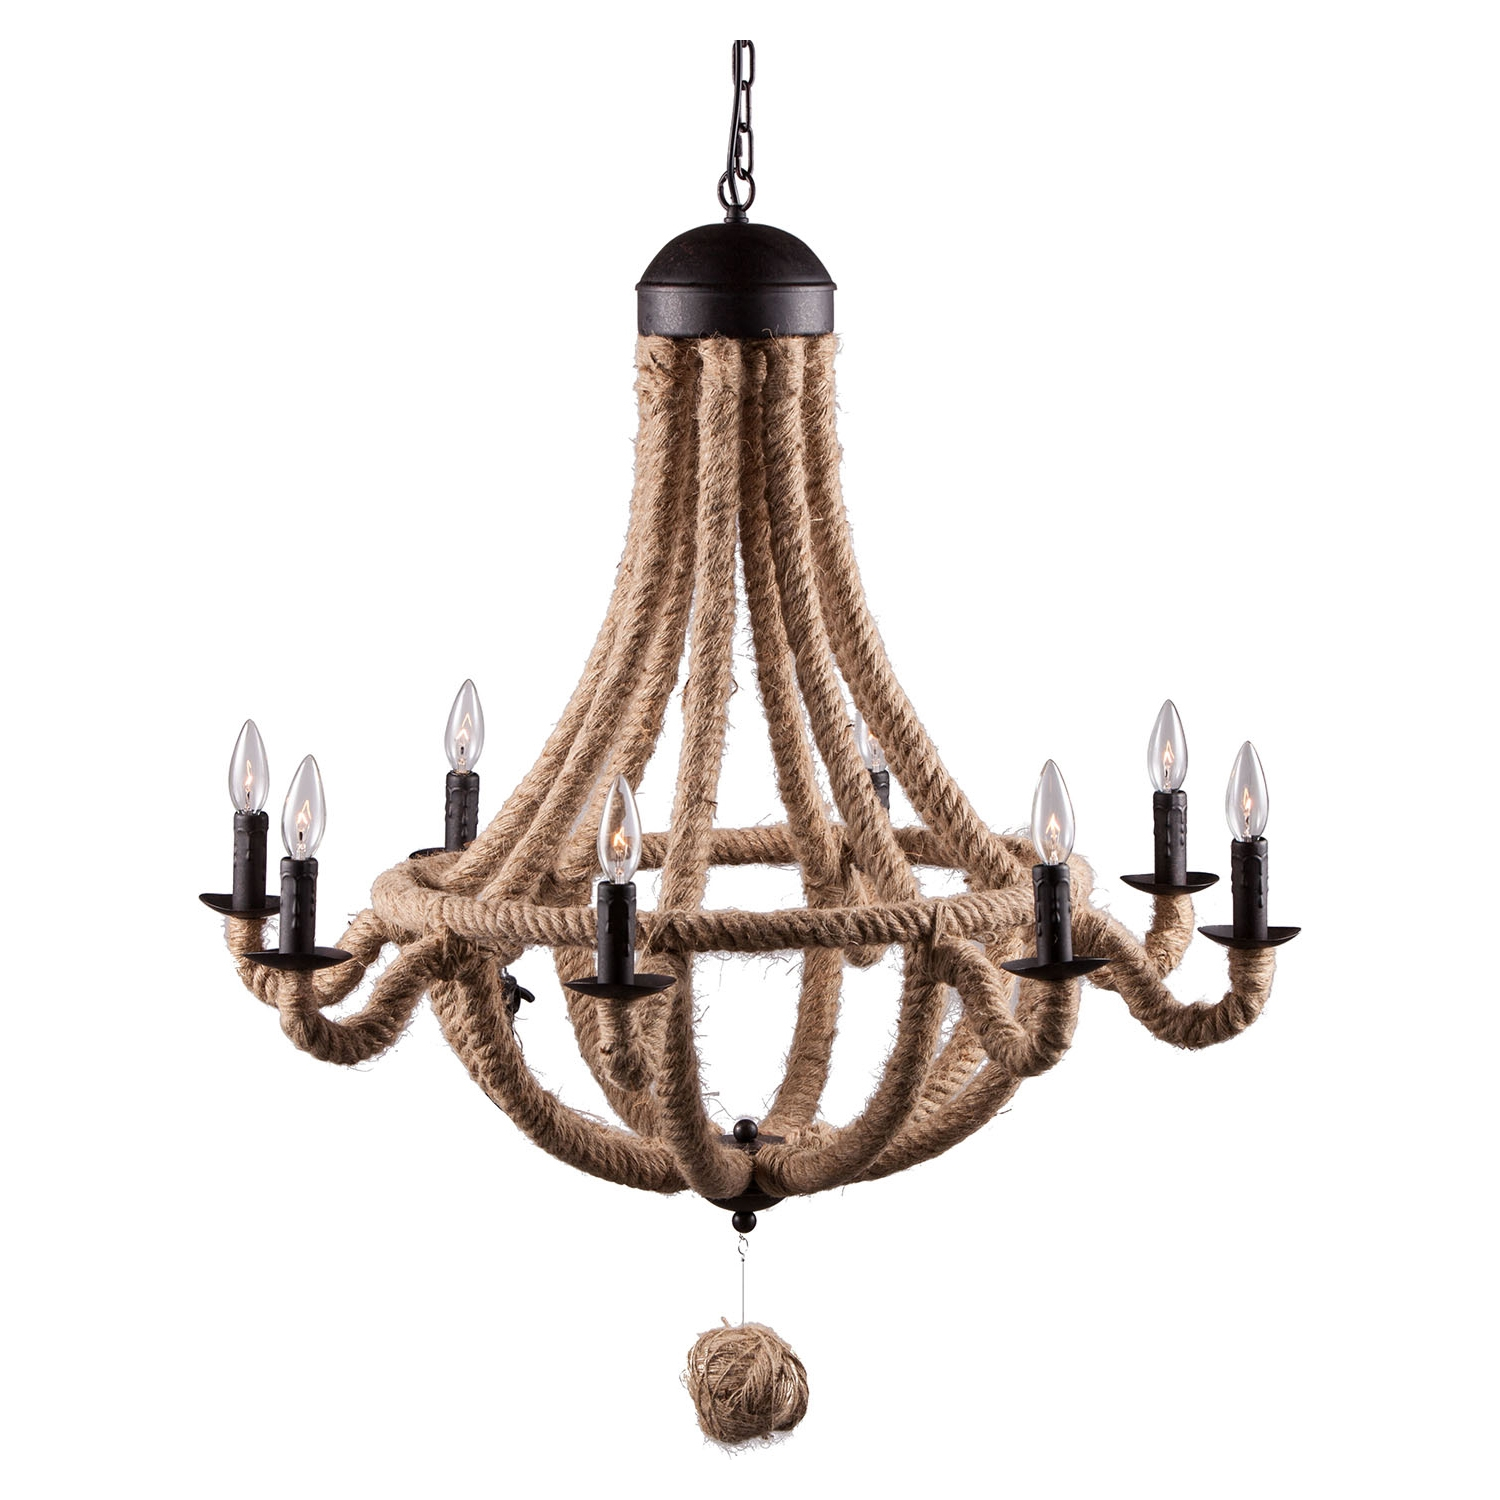 Celestine Natural Ceiling Lamp - ZM-98261